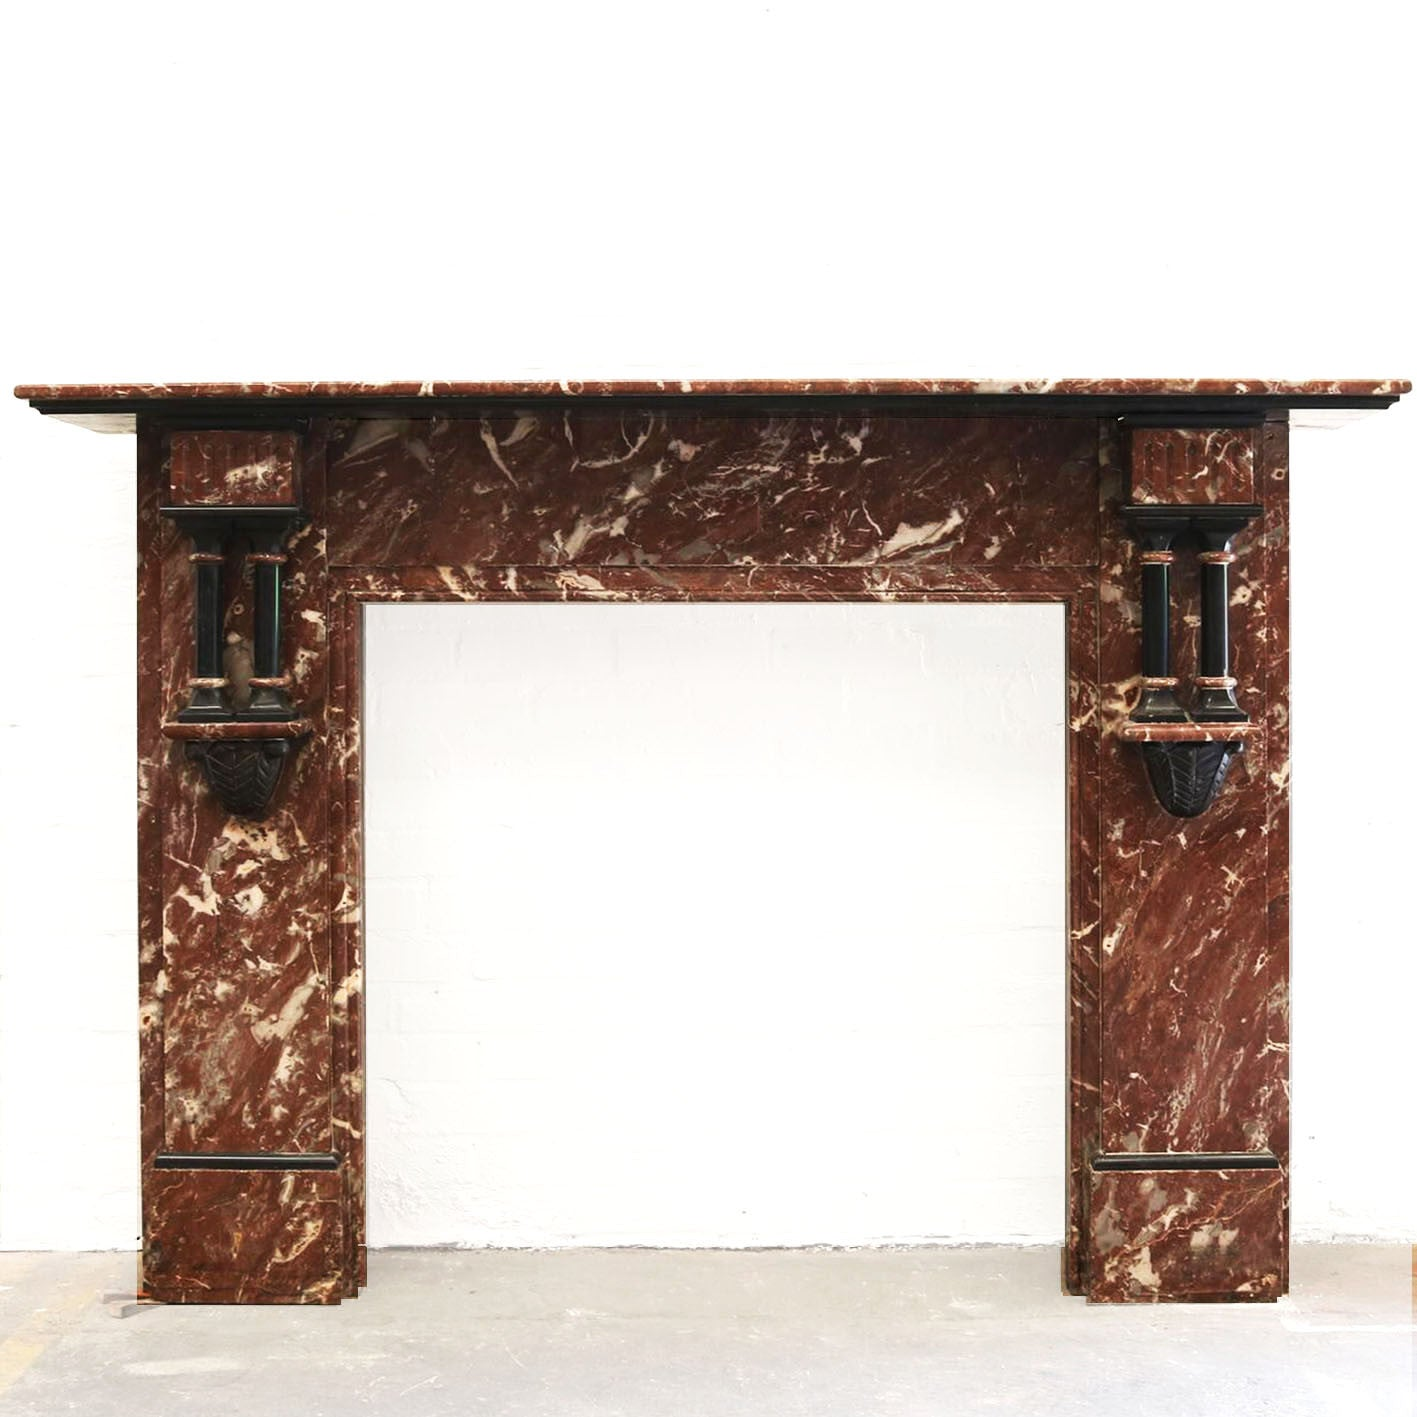 Victorian Rouge Royale Marble Fireplace Surround - architectural-forum